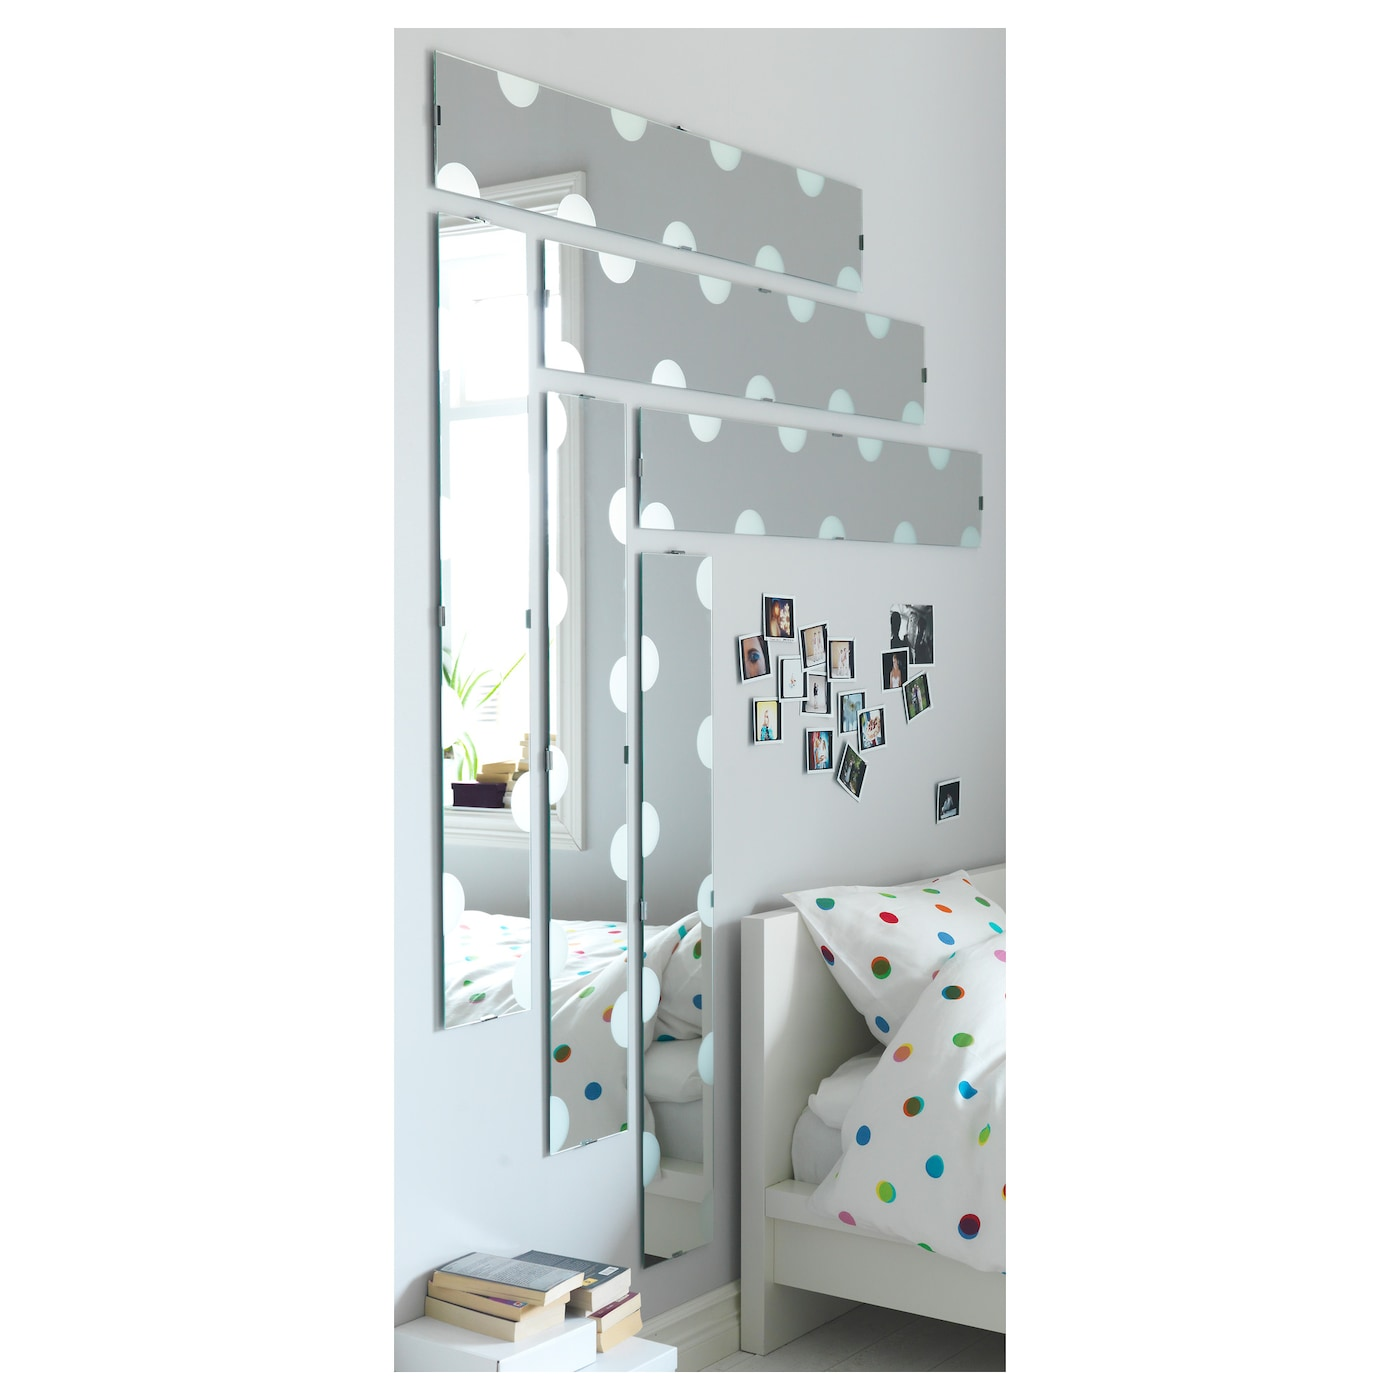 lundamo mirror 20 x 120 cm ikea. Black Bedroom Furniture Sets. Home Design Ideas